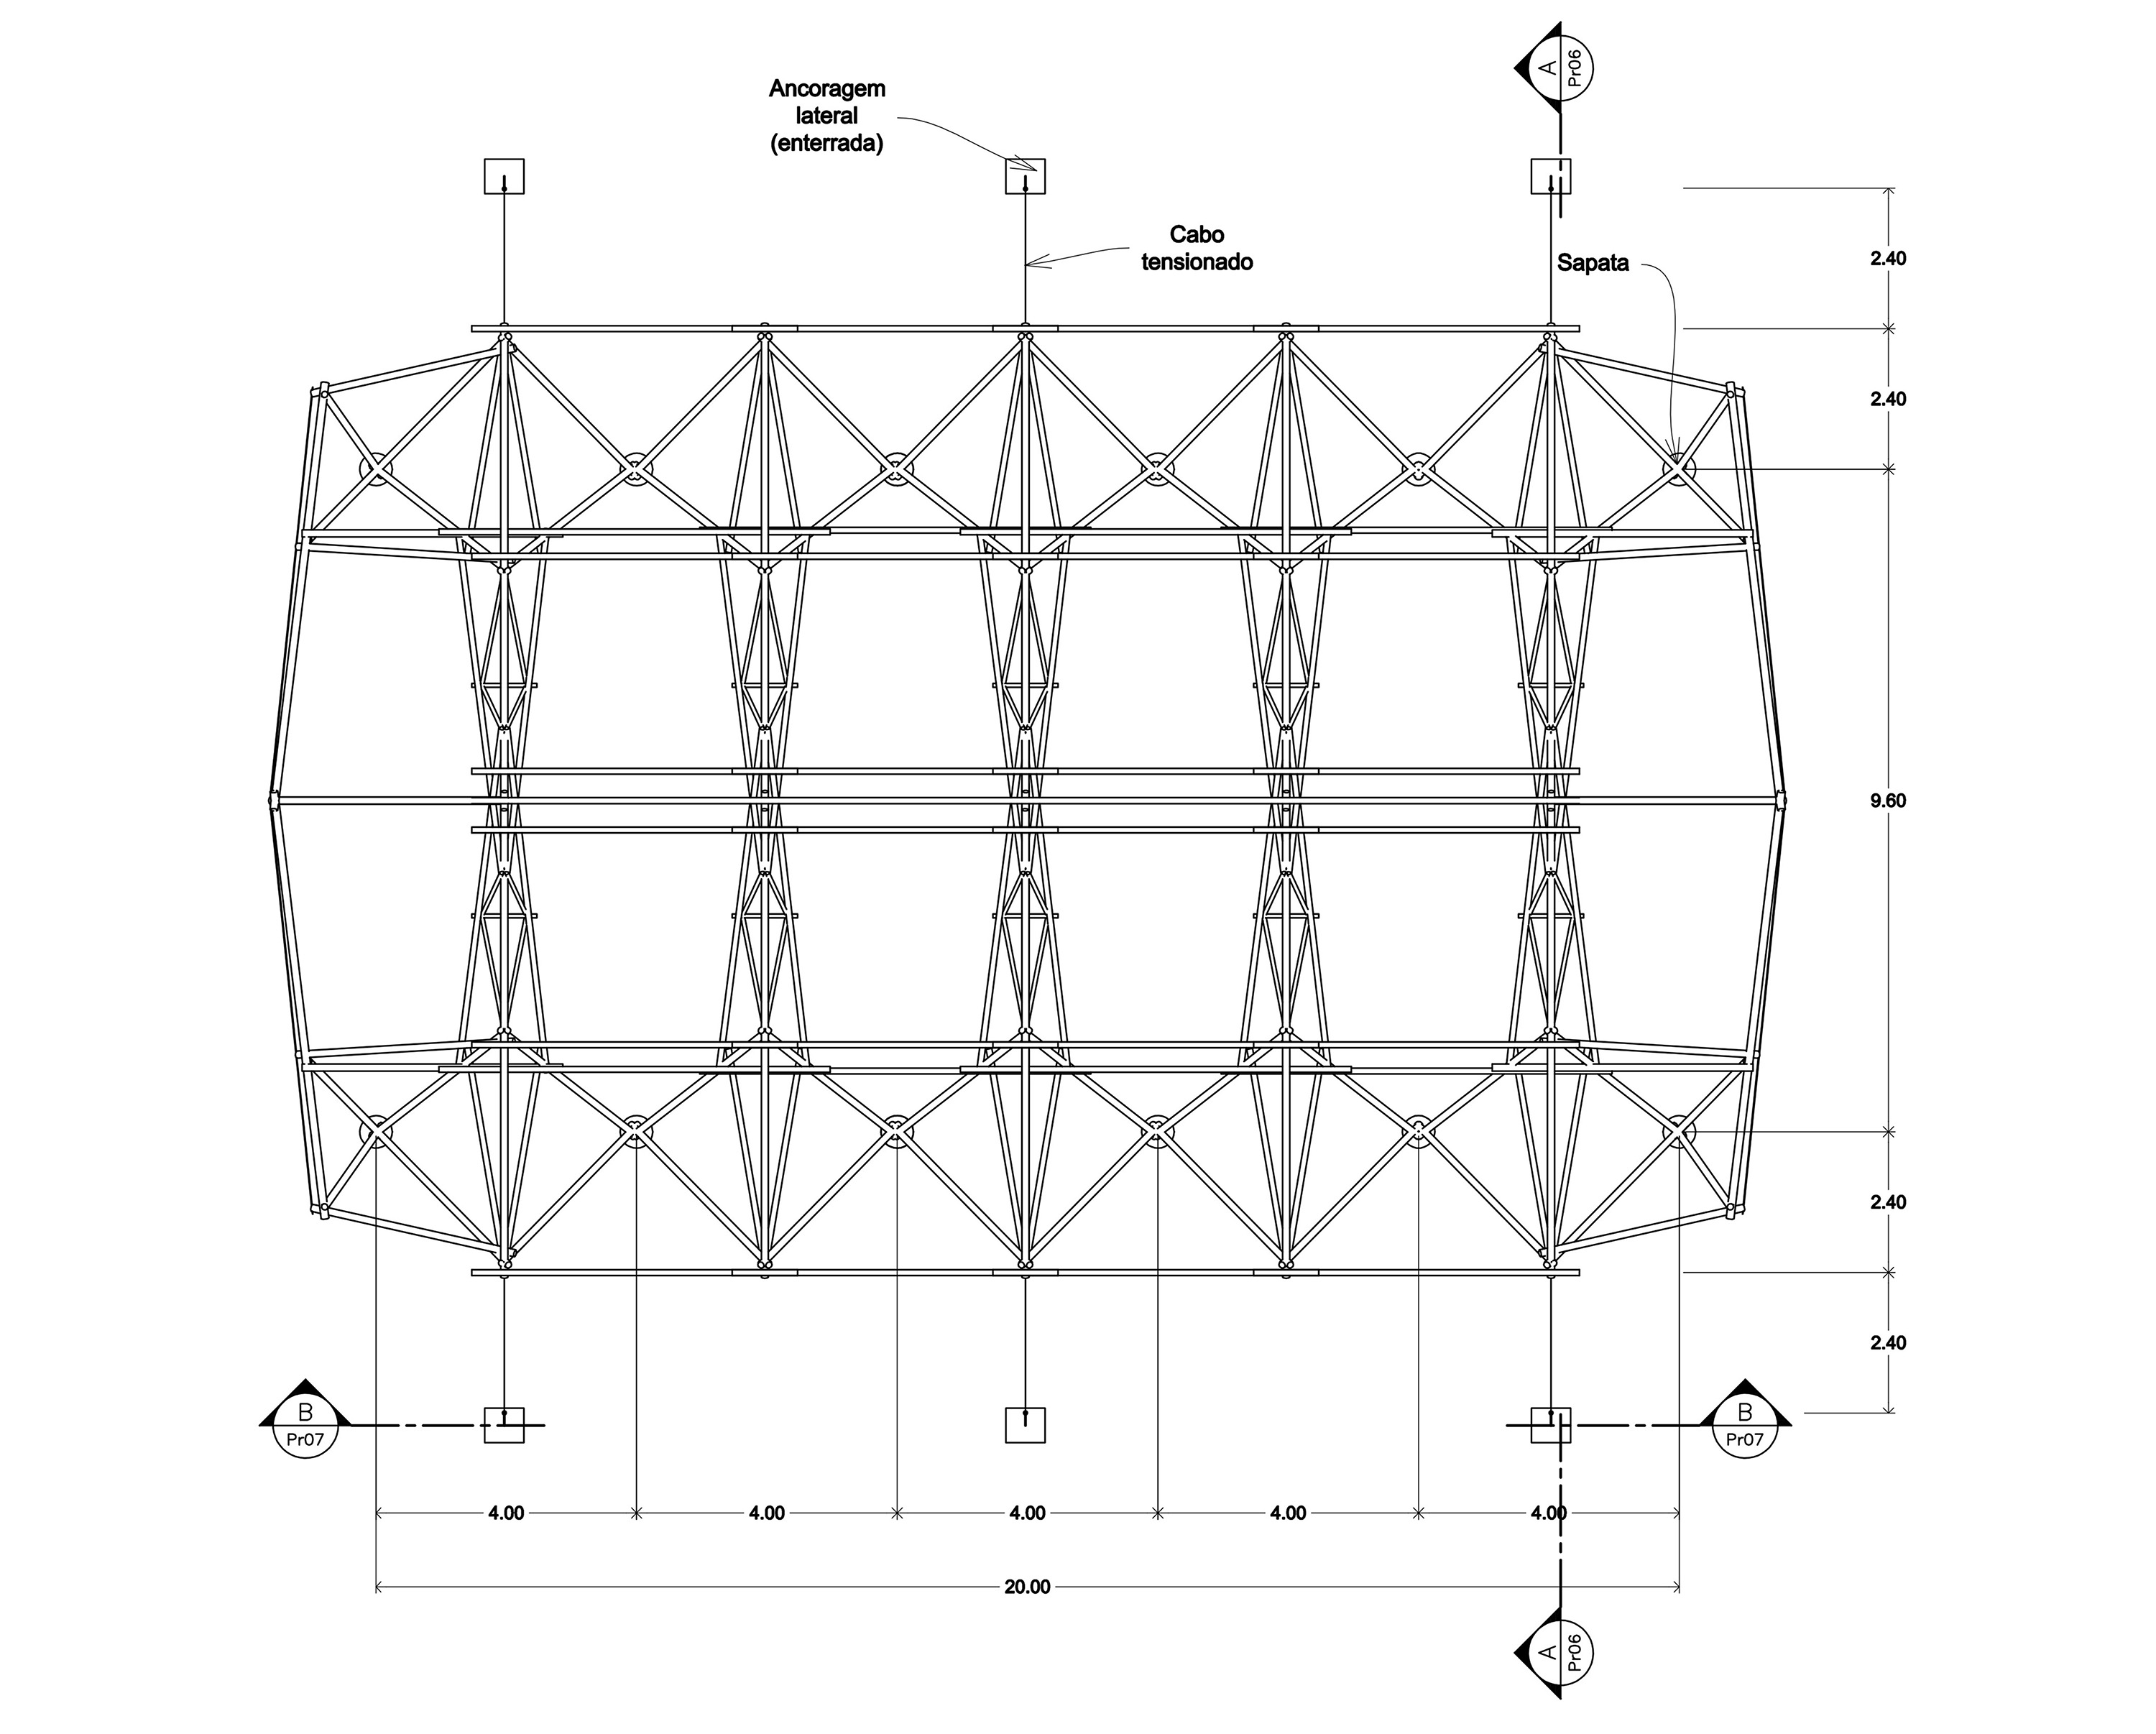 Deployable-Structure-Pavilion-applying-Bamboo-and-Biomaterials-4-Plan-View.jpg